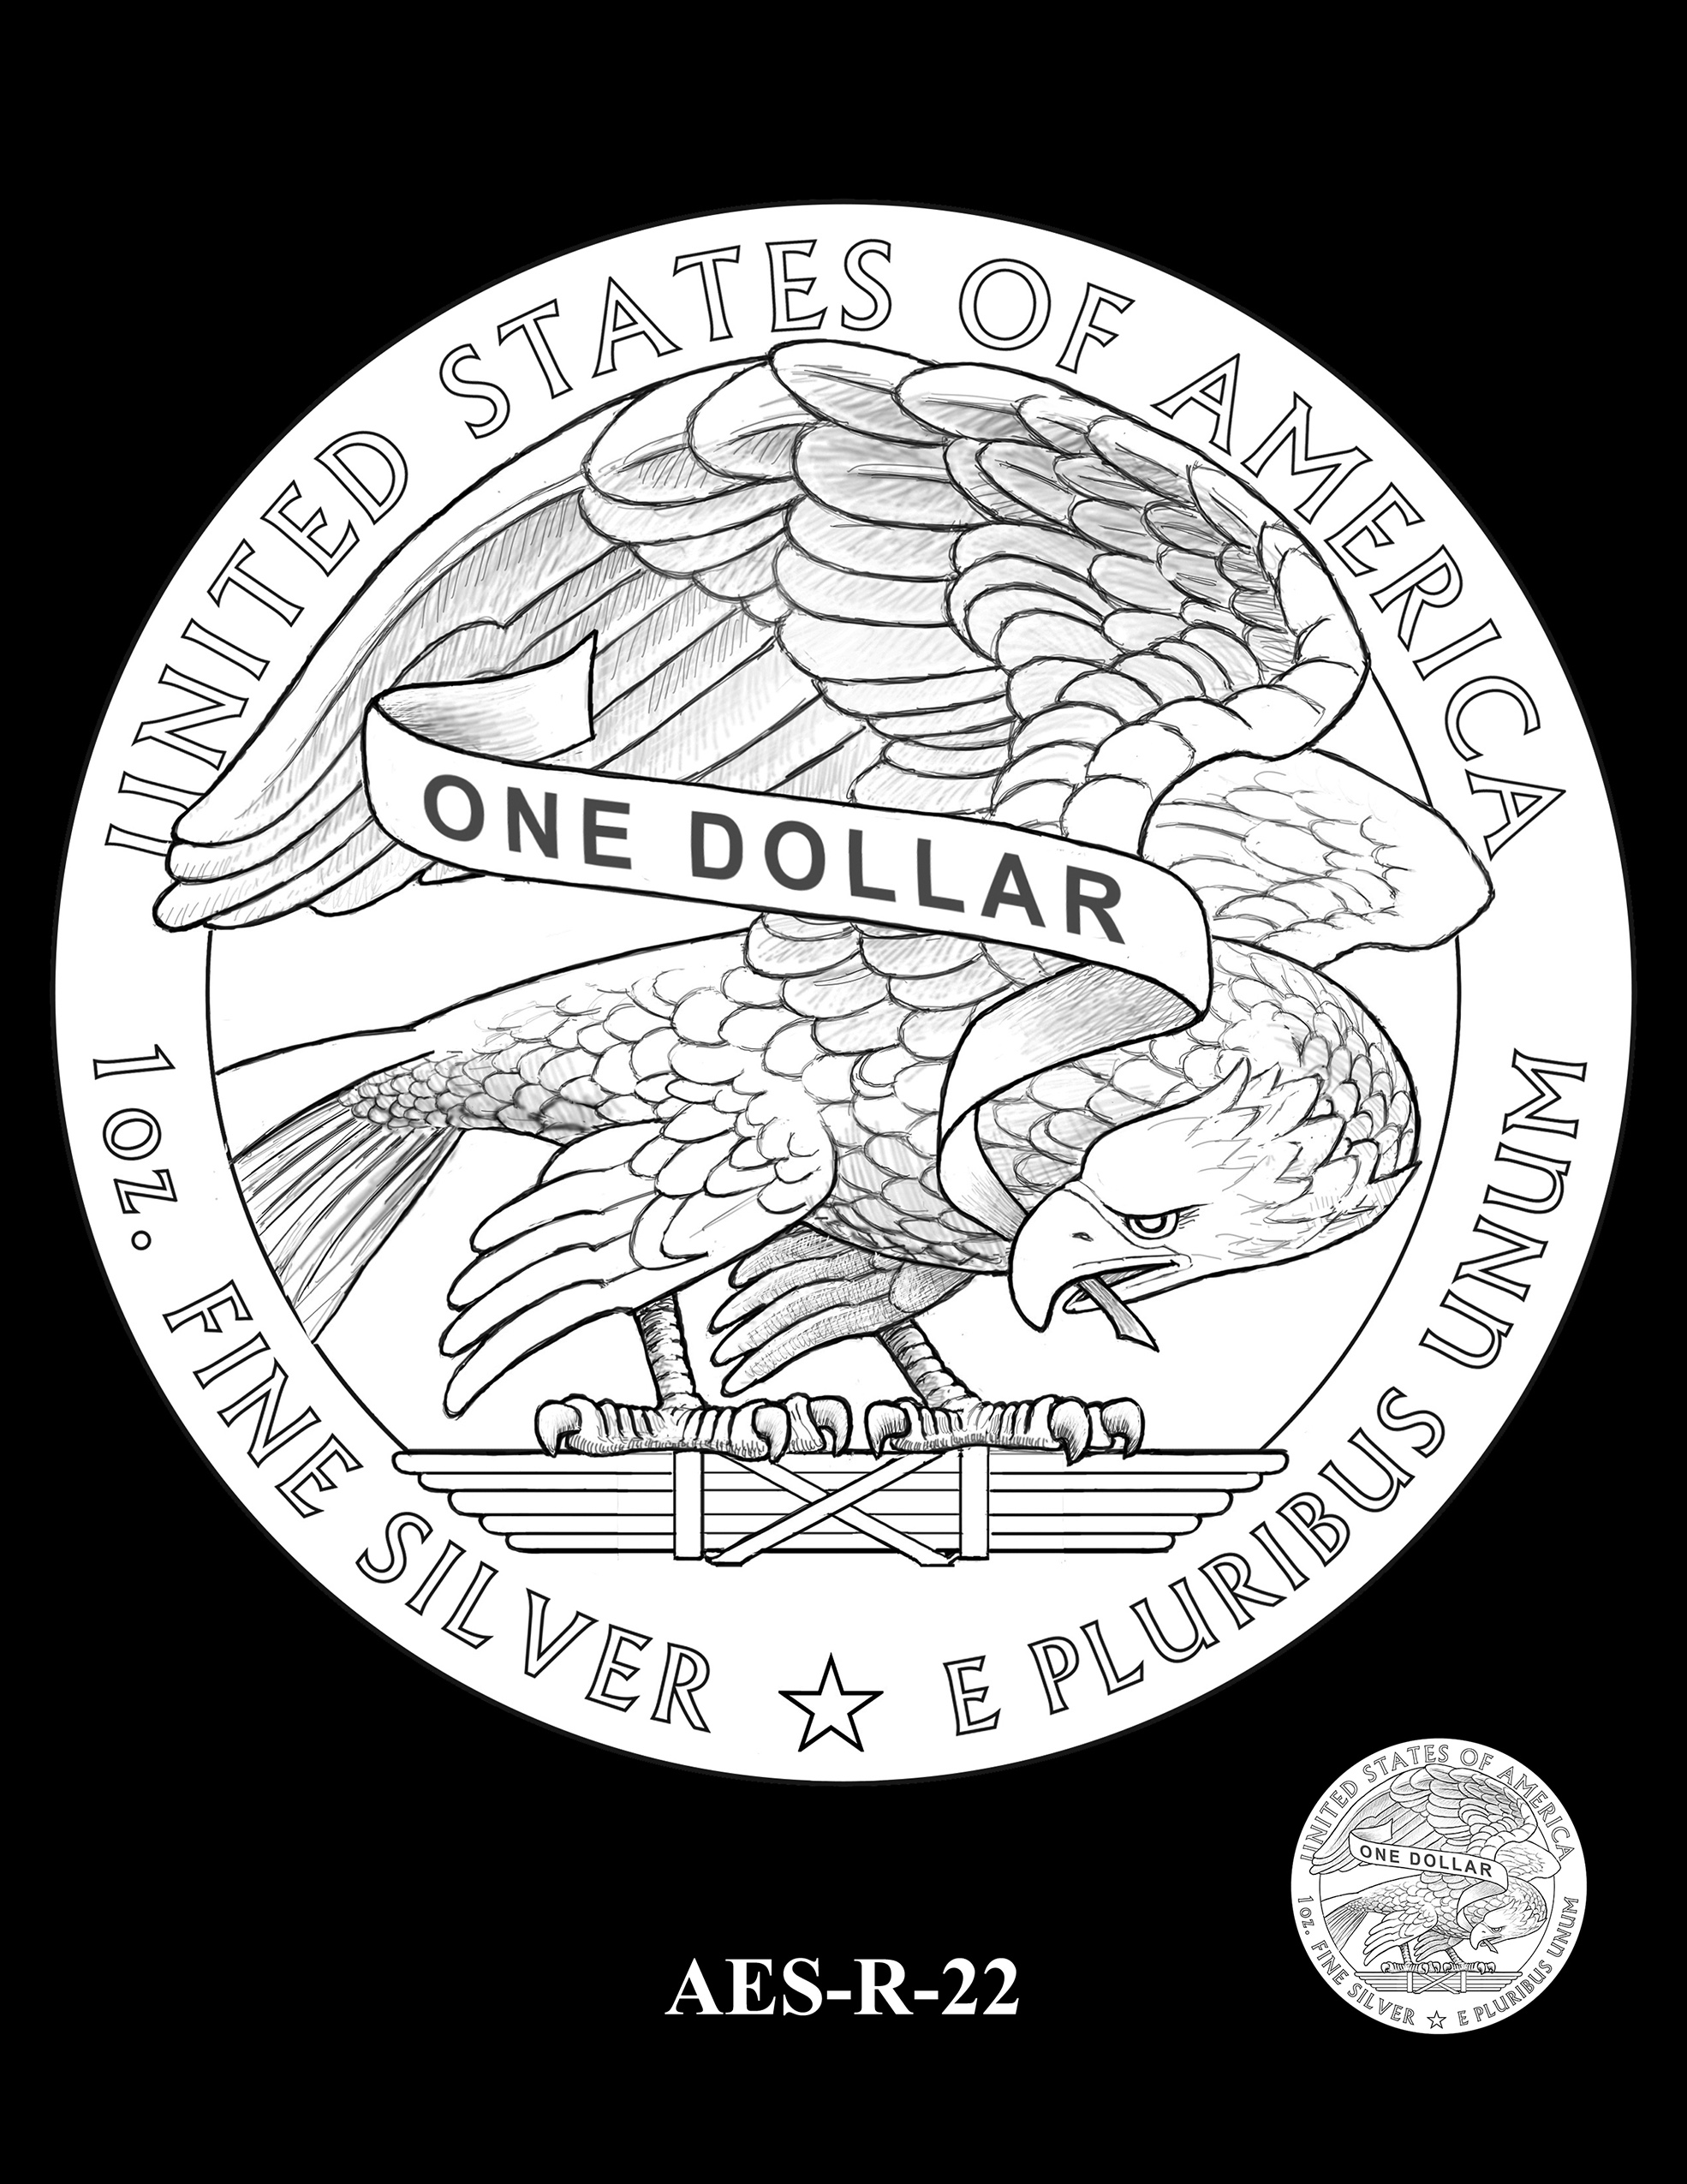 AES-R-22 -- American Eagle Proof and Bullion Silver Coin - Reverse